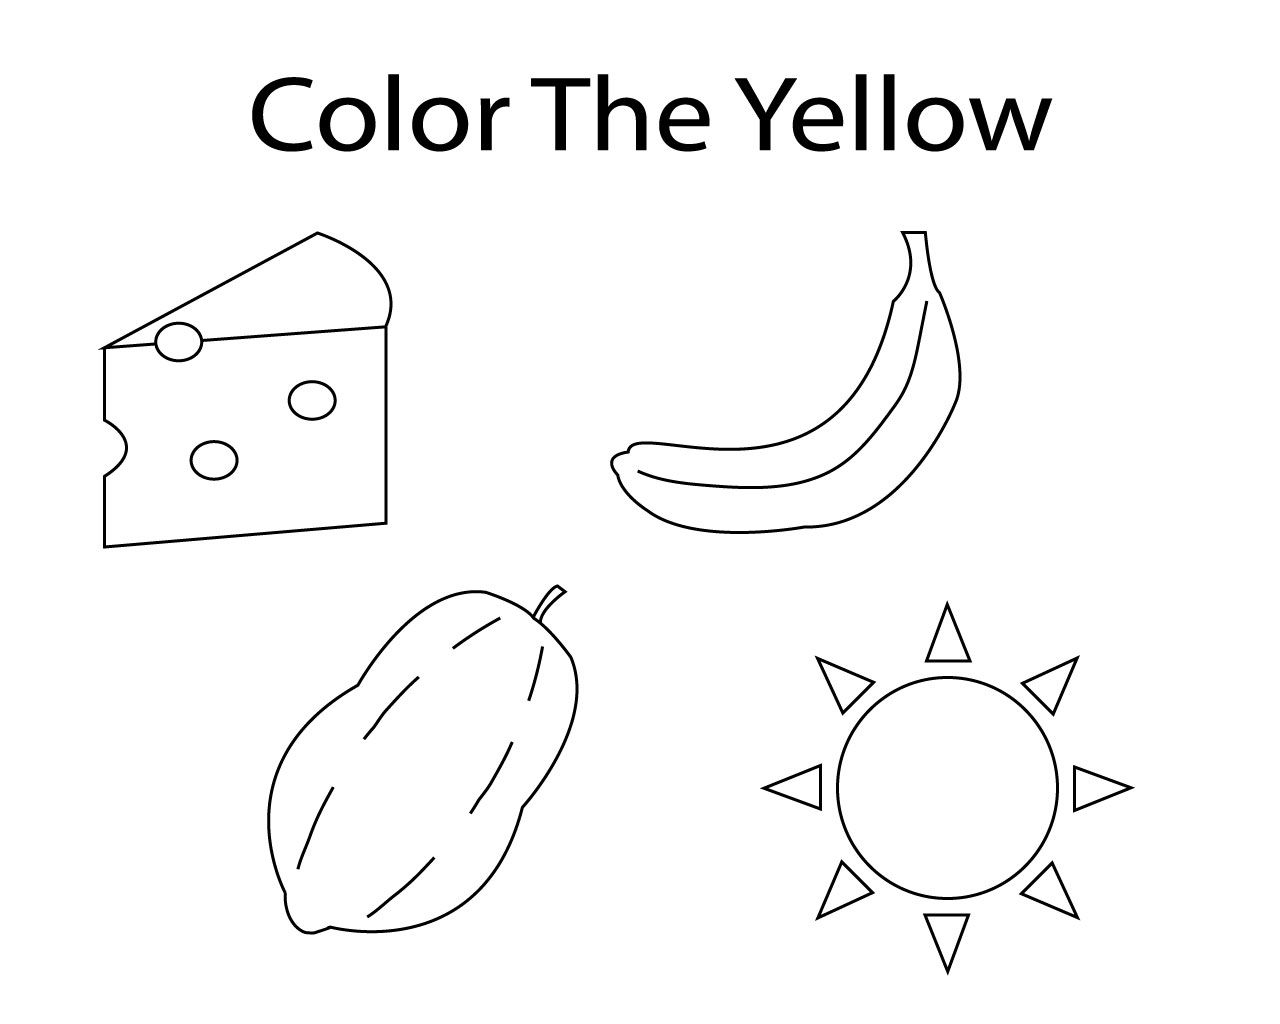 Yellow Coloring Pages For Toddler Coloring Pages For Toddlers Printables Coloring Pages Kindergarten Coloring Pages